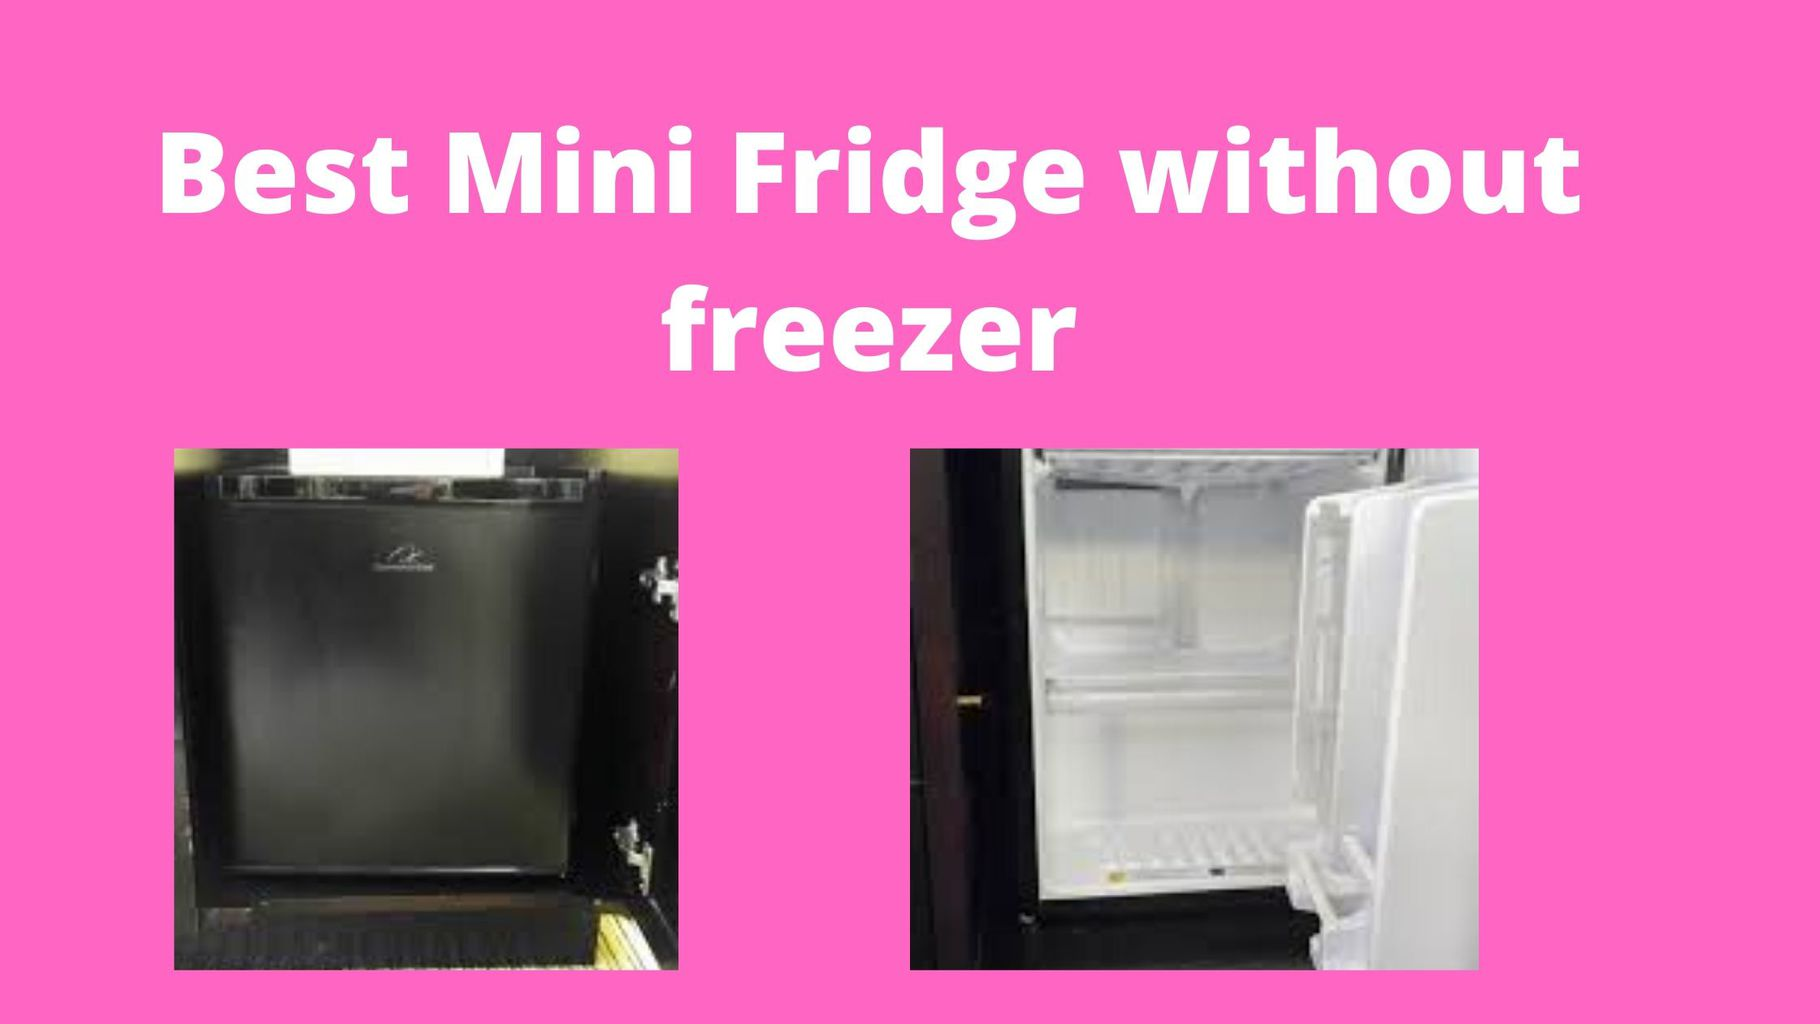 Best Mini Fridge without freezer